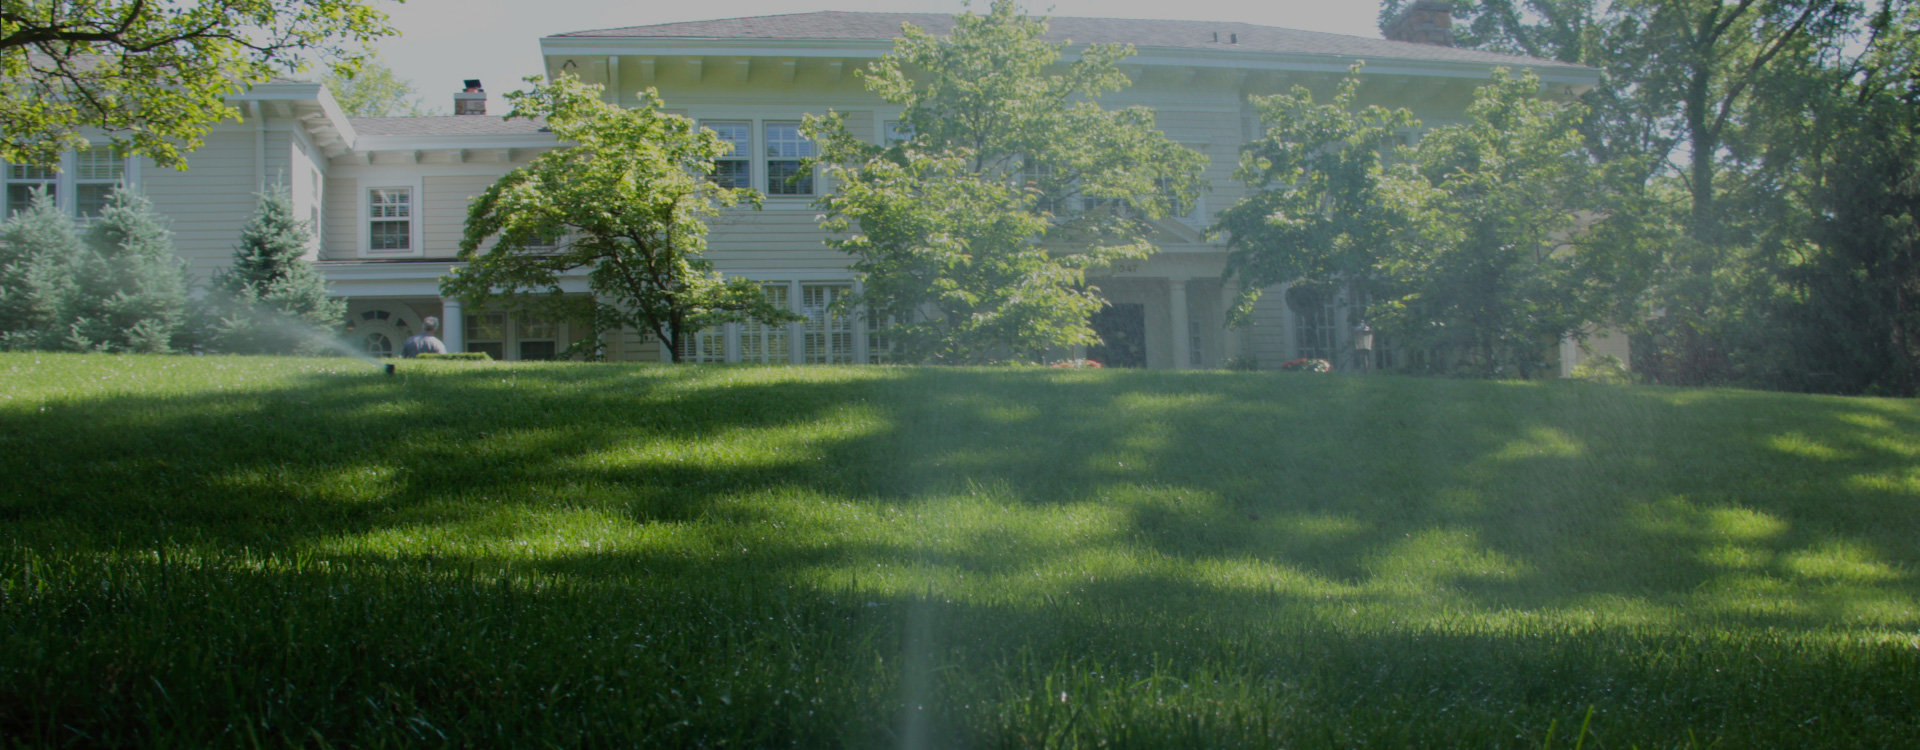 5 Reasons to Install A Sprinkler System this Year